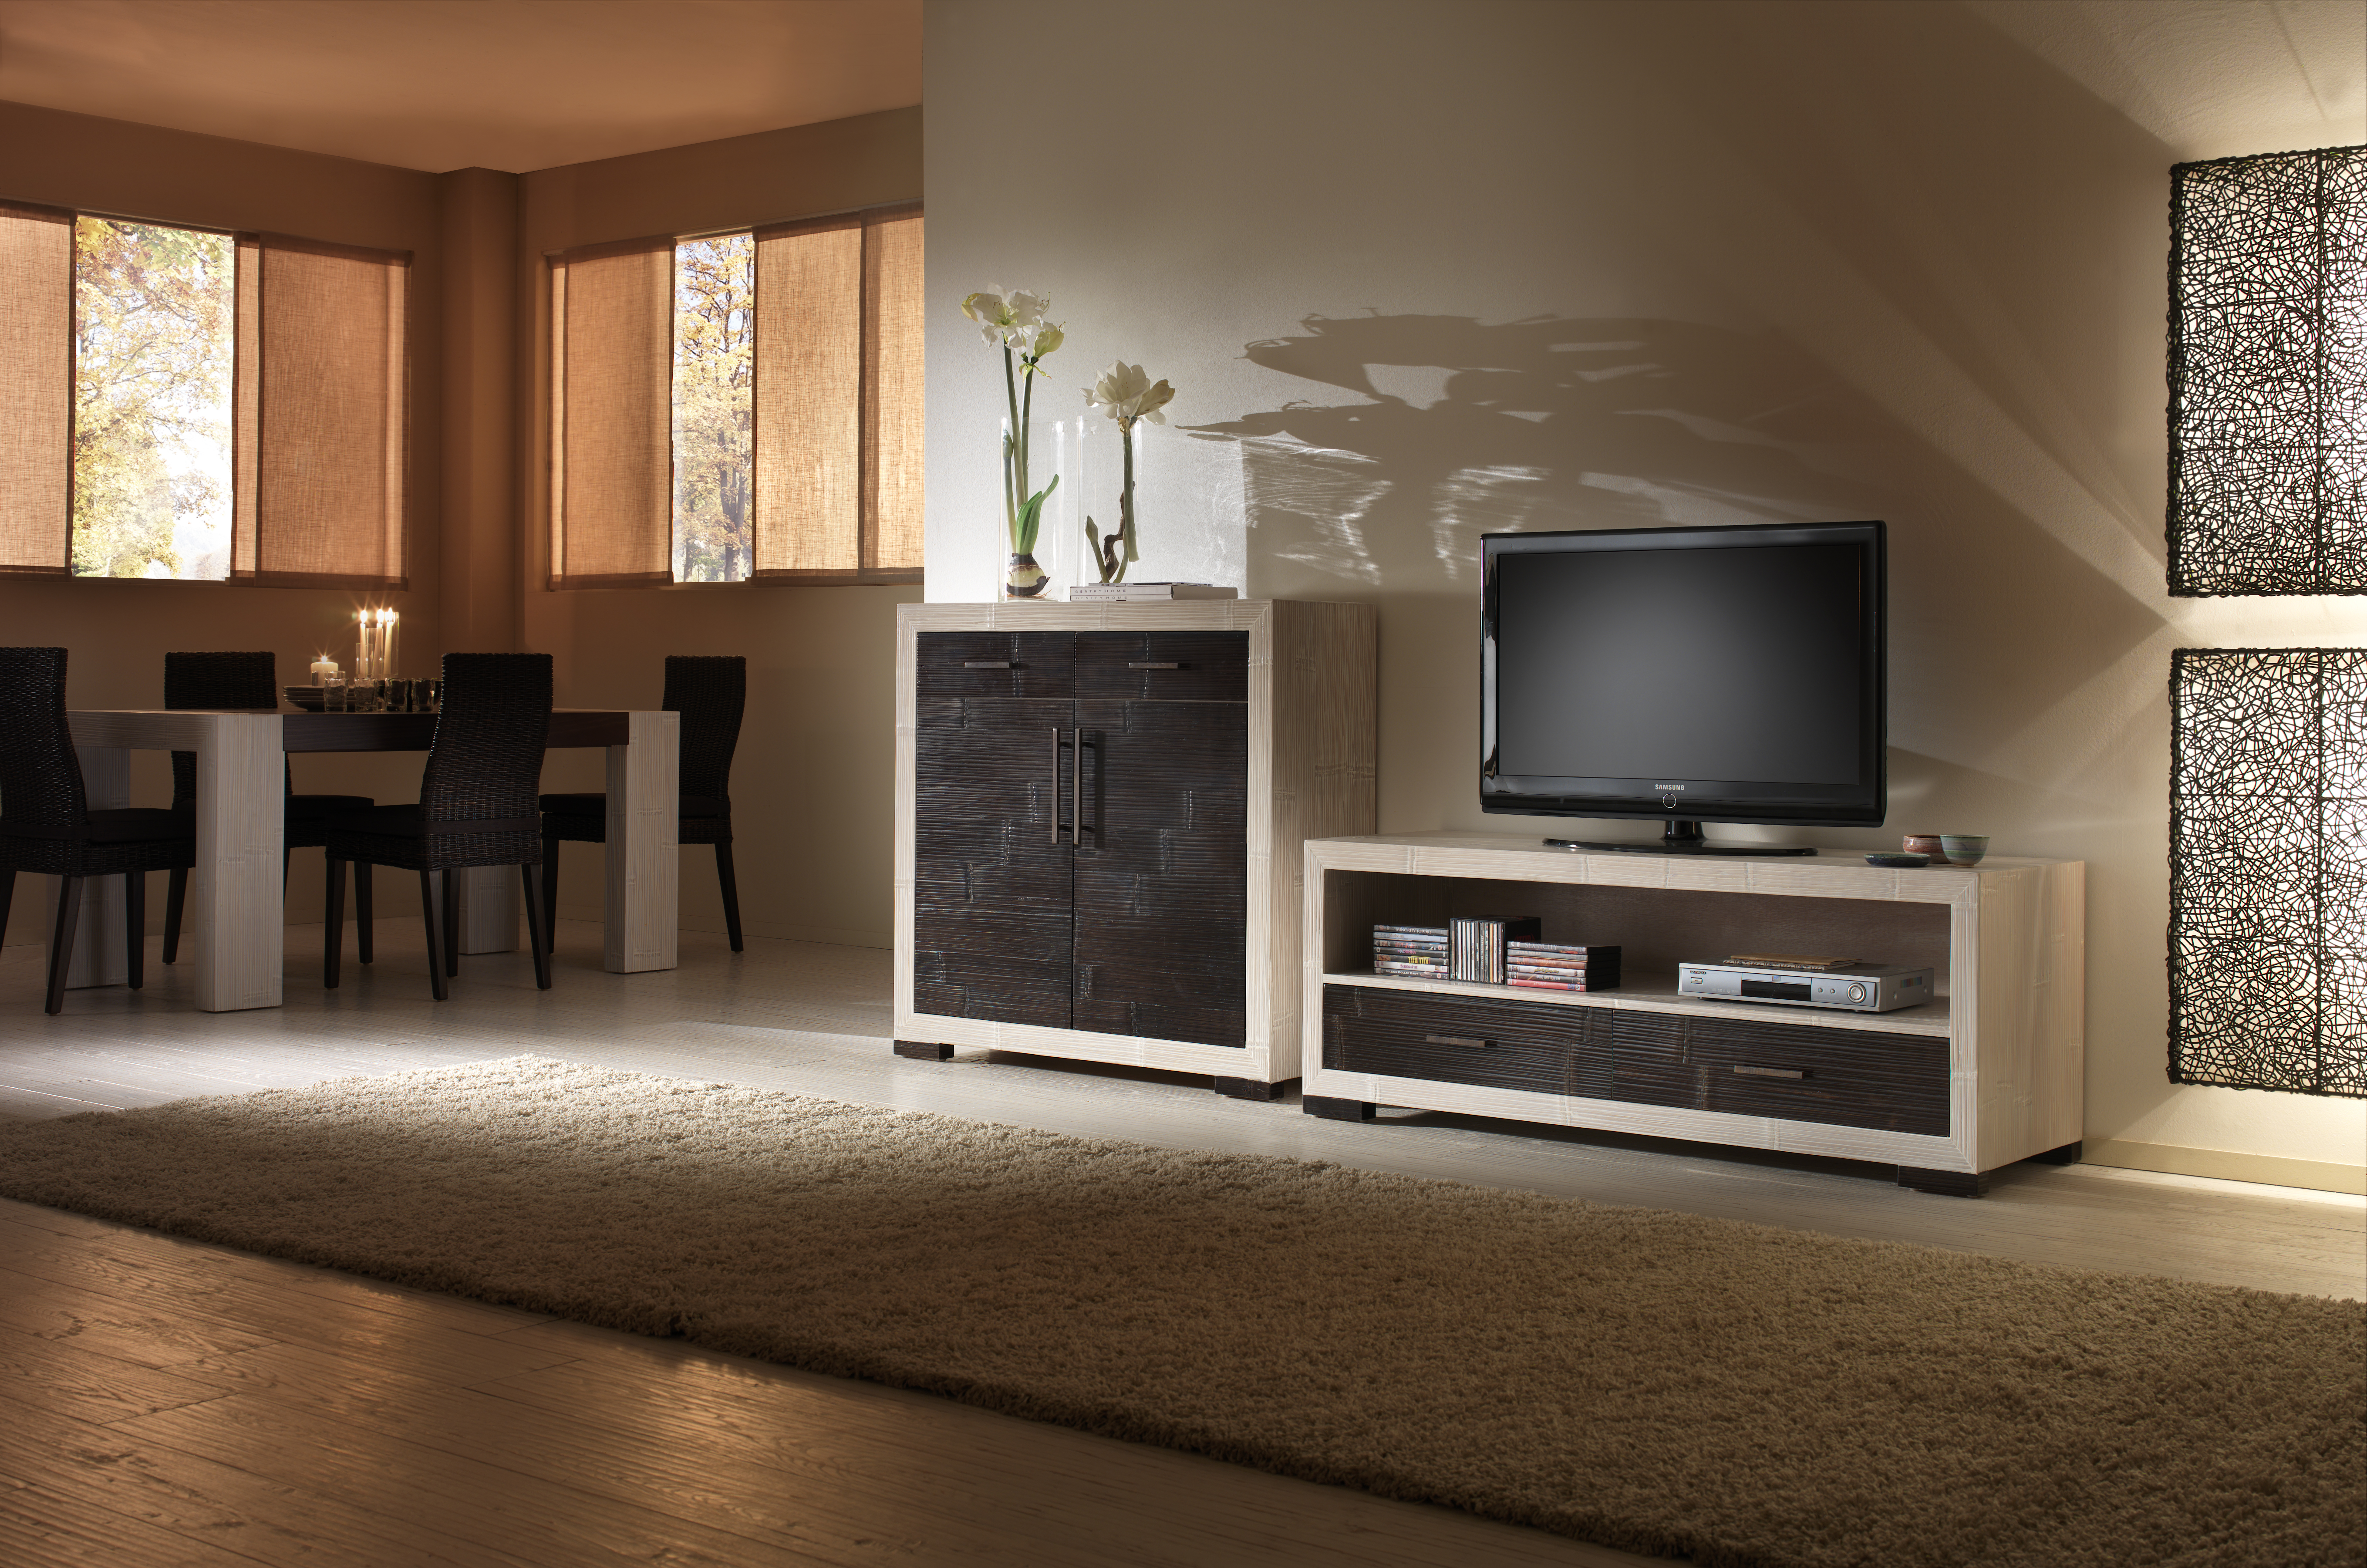 Meuble T L Vision Moderne 150 Cm De Longueur Collection Indah # Vision Confort Meuble Tv